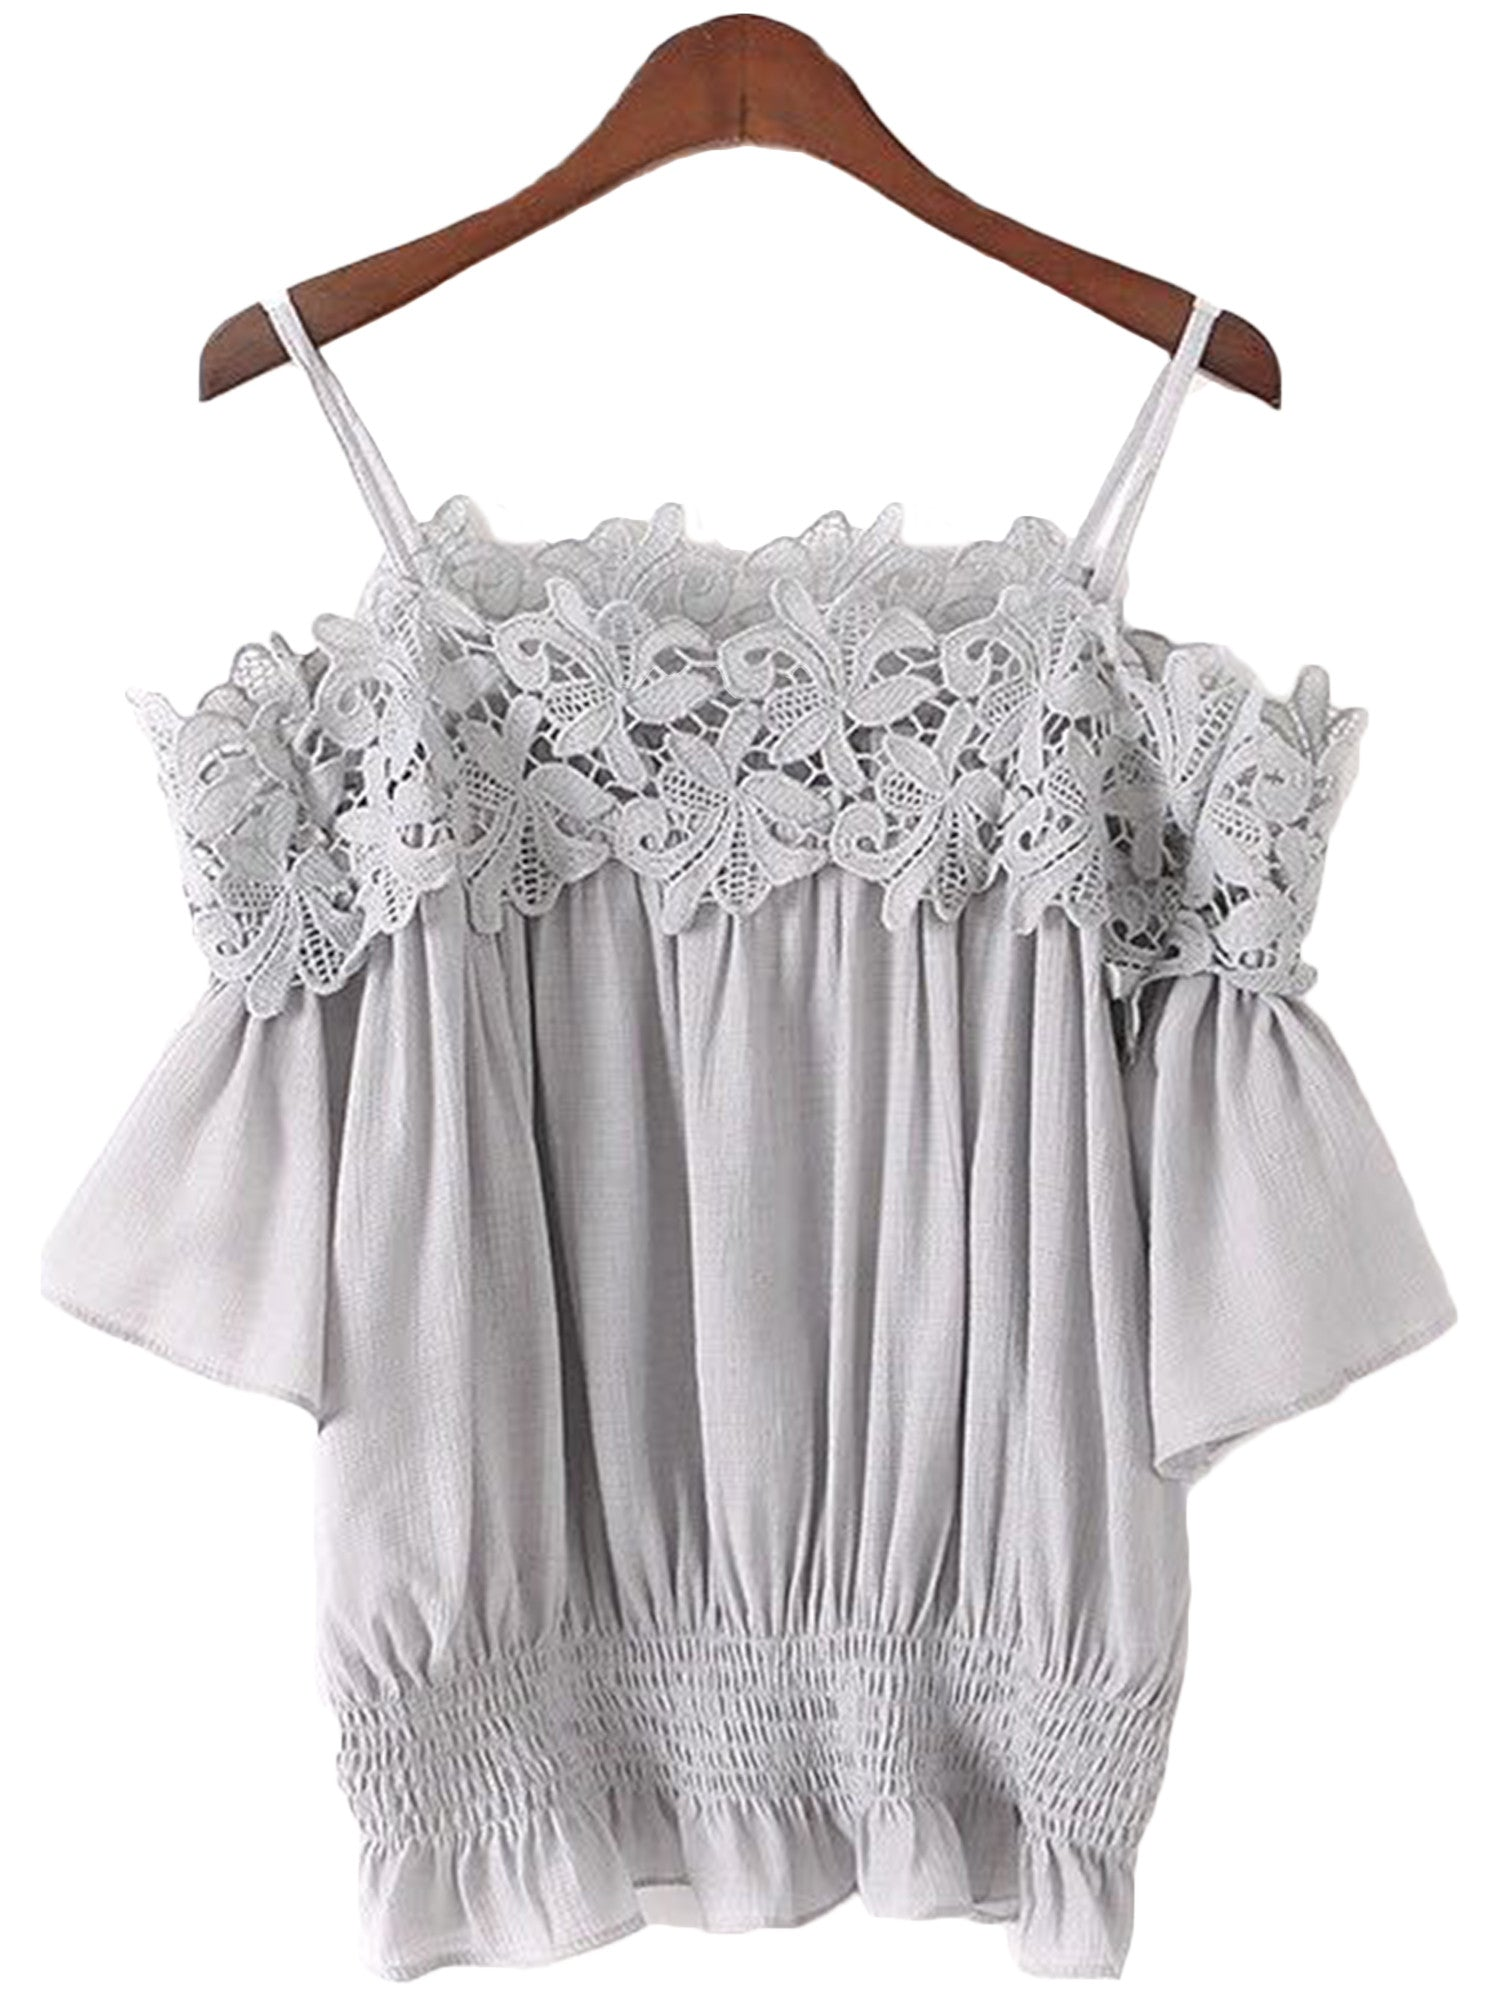 'Wen' Lace Pleated Cami Top